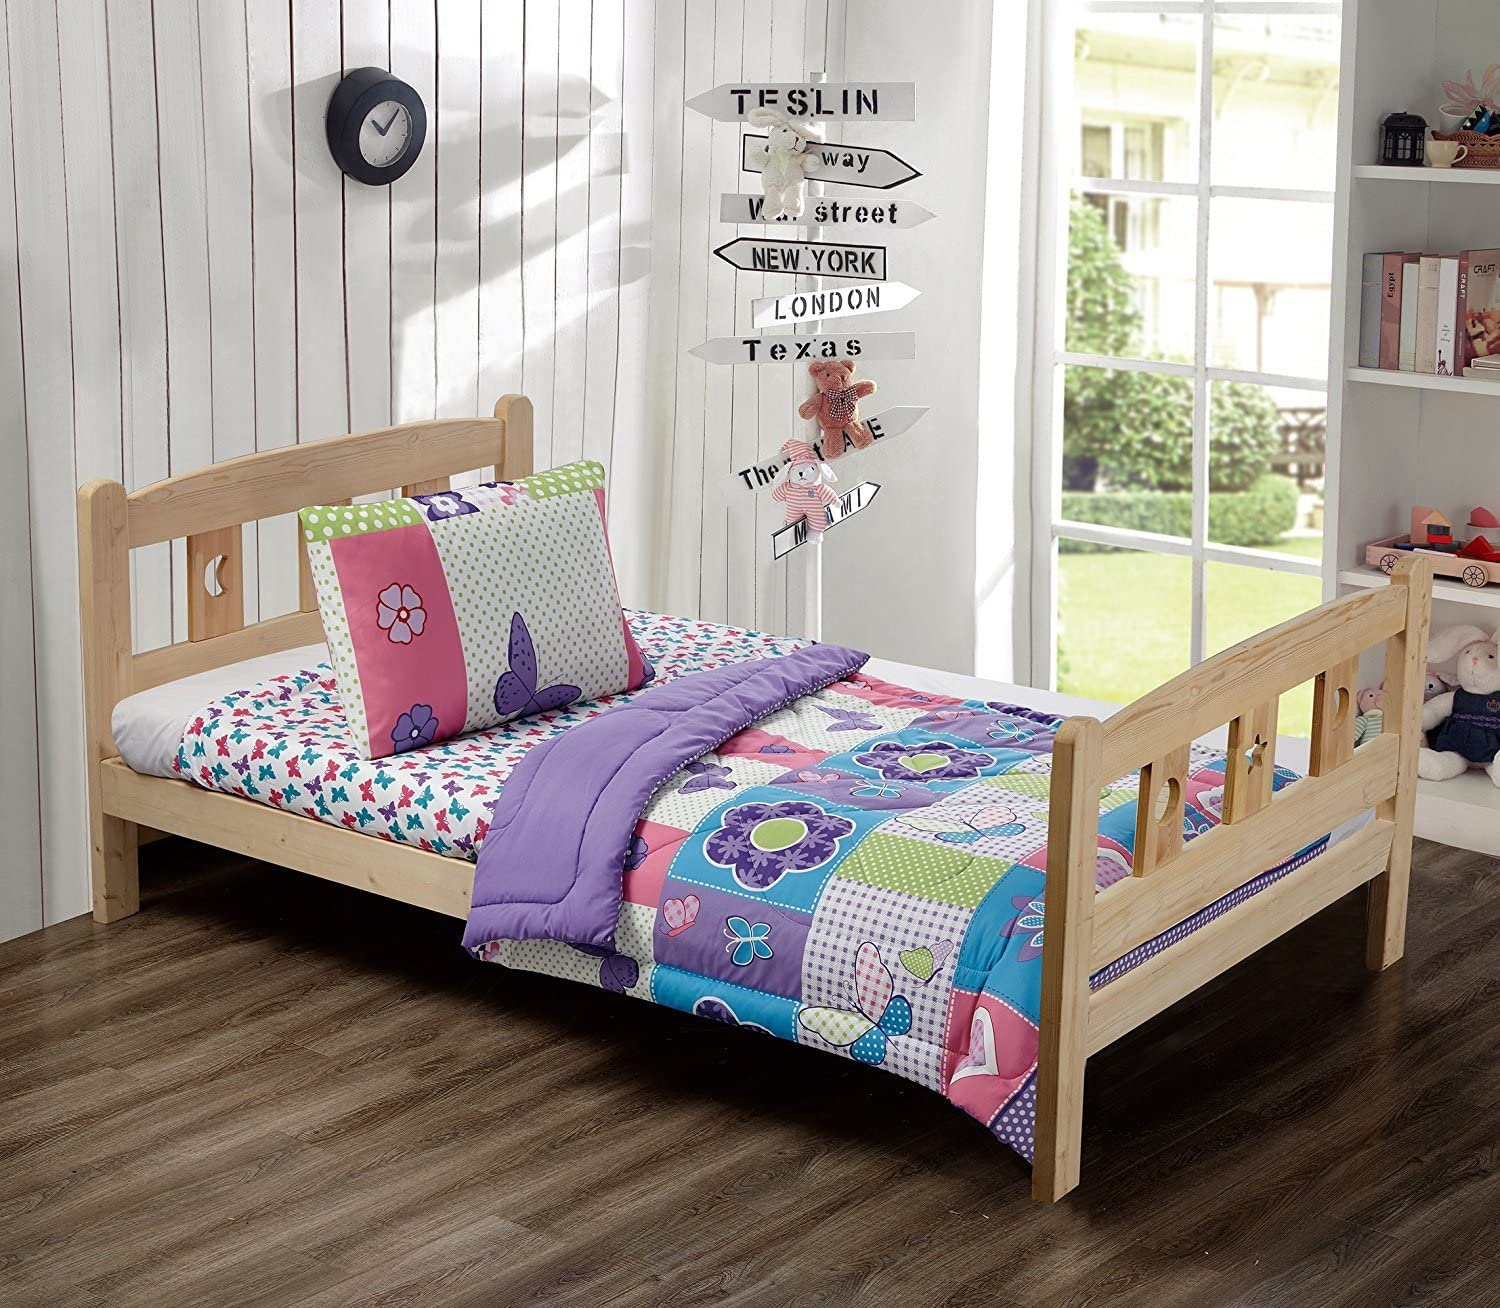 MK Home Mk Collection 3 Pc Toddler Bed Butterfly Purple Pink Turquoise Green Flowers Girls Teens New